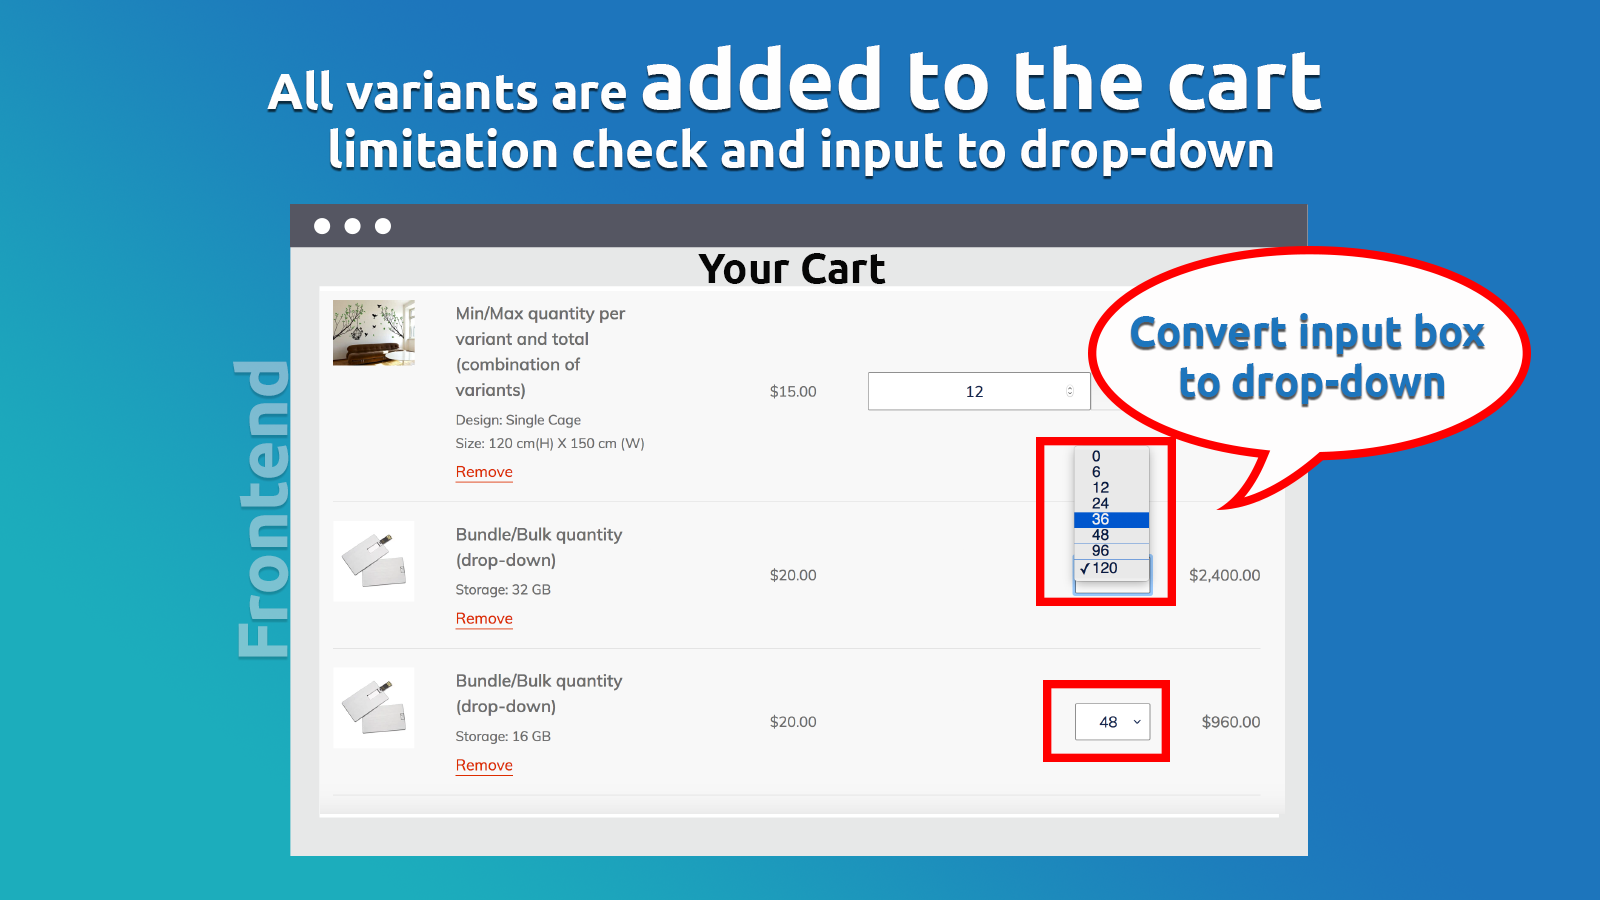 All variants are added to the cart at the same time